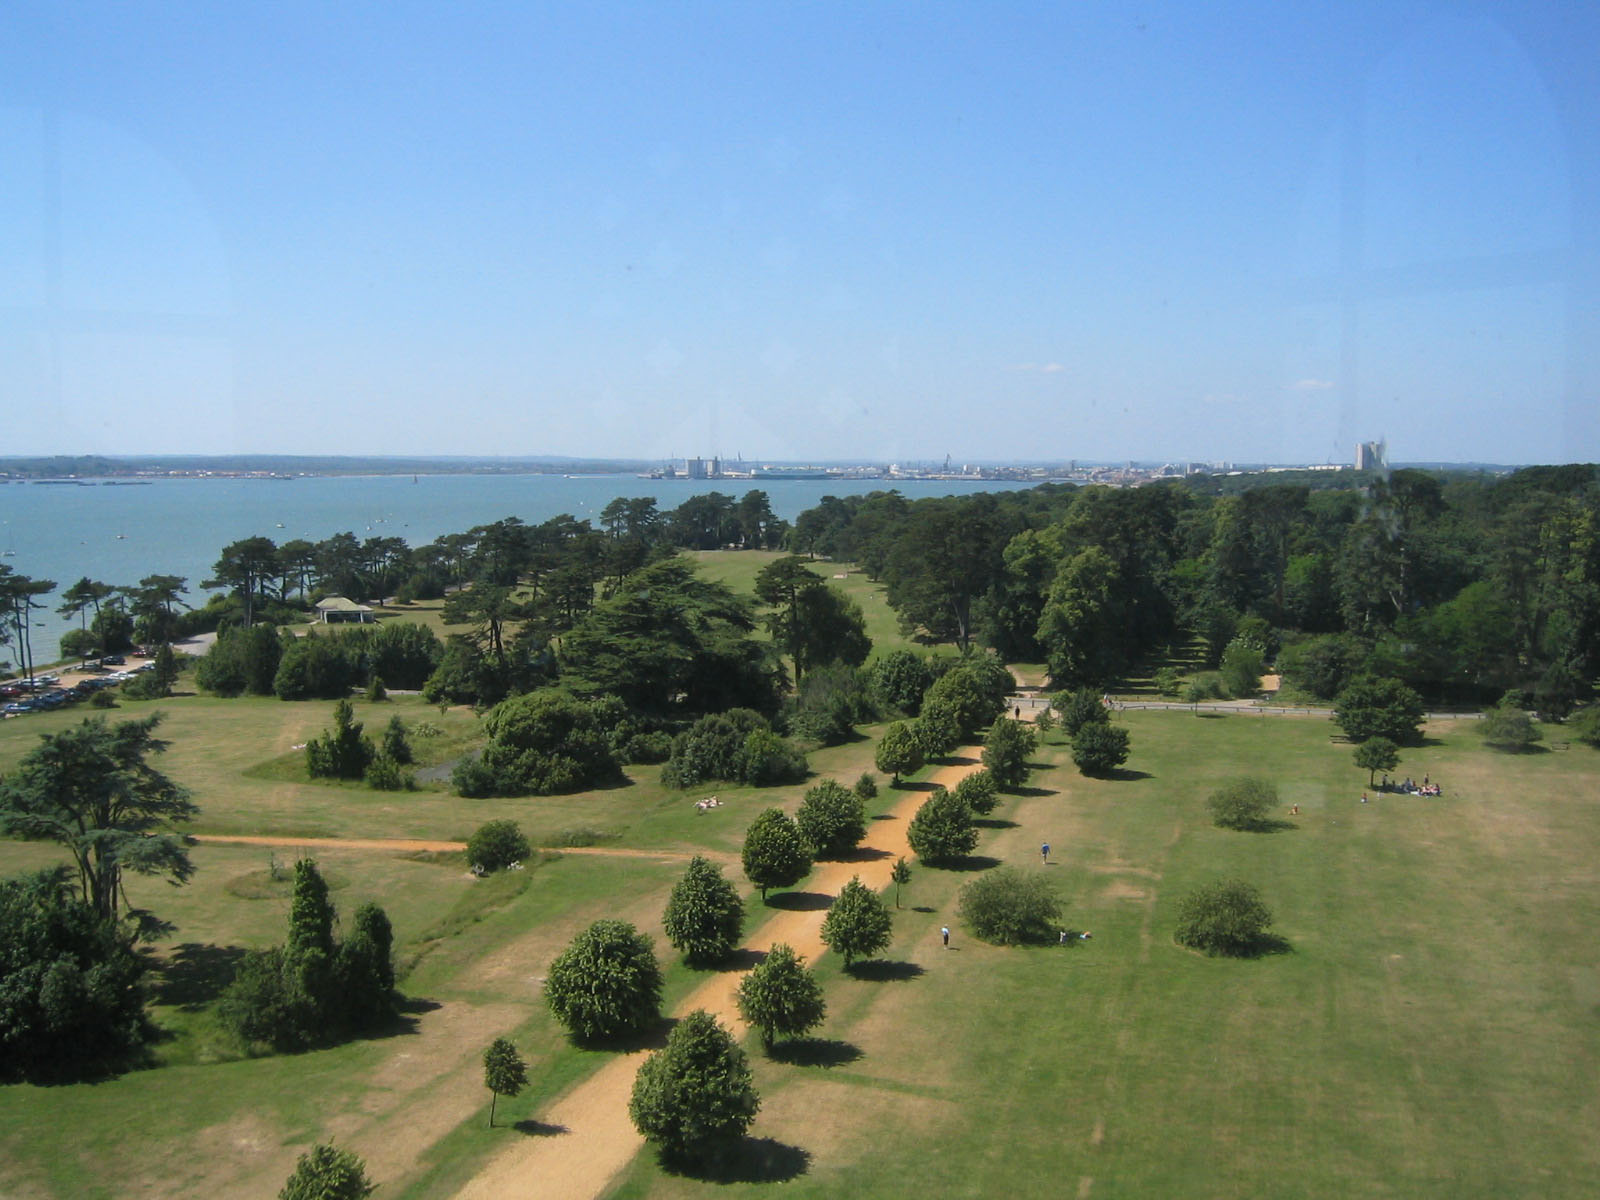 View from Netley Hospital chapel tower, in the Royal Victoria Country Park, Netley, Hampshire, UK. Looking north-west across the park, up Southampton Water, towards Southampton.